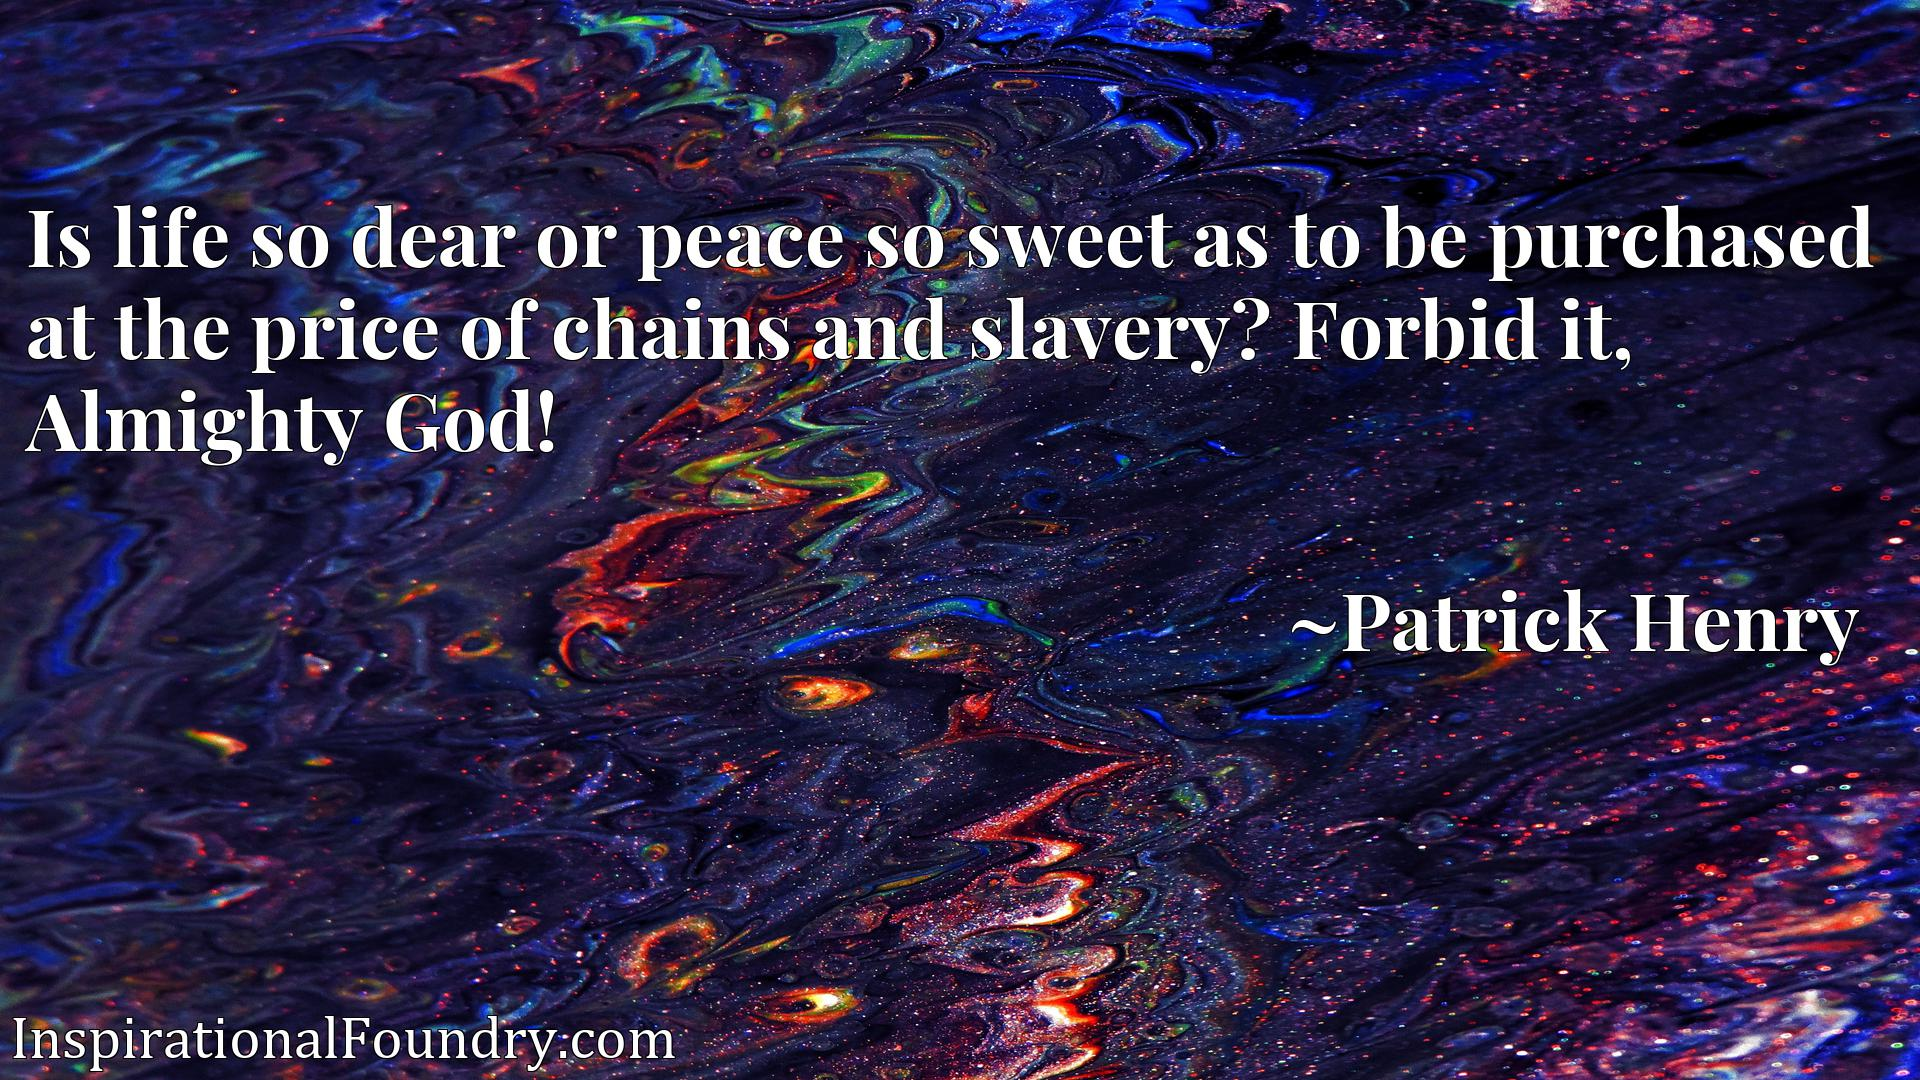 Is life so dear or peace so sweet as to be purchased at the price of chains and slavery? Forbid it, Almighty God!